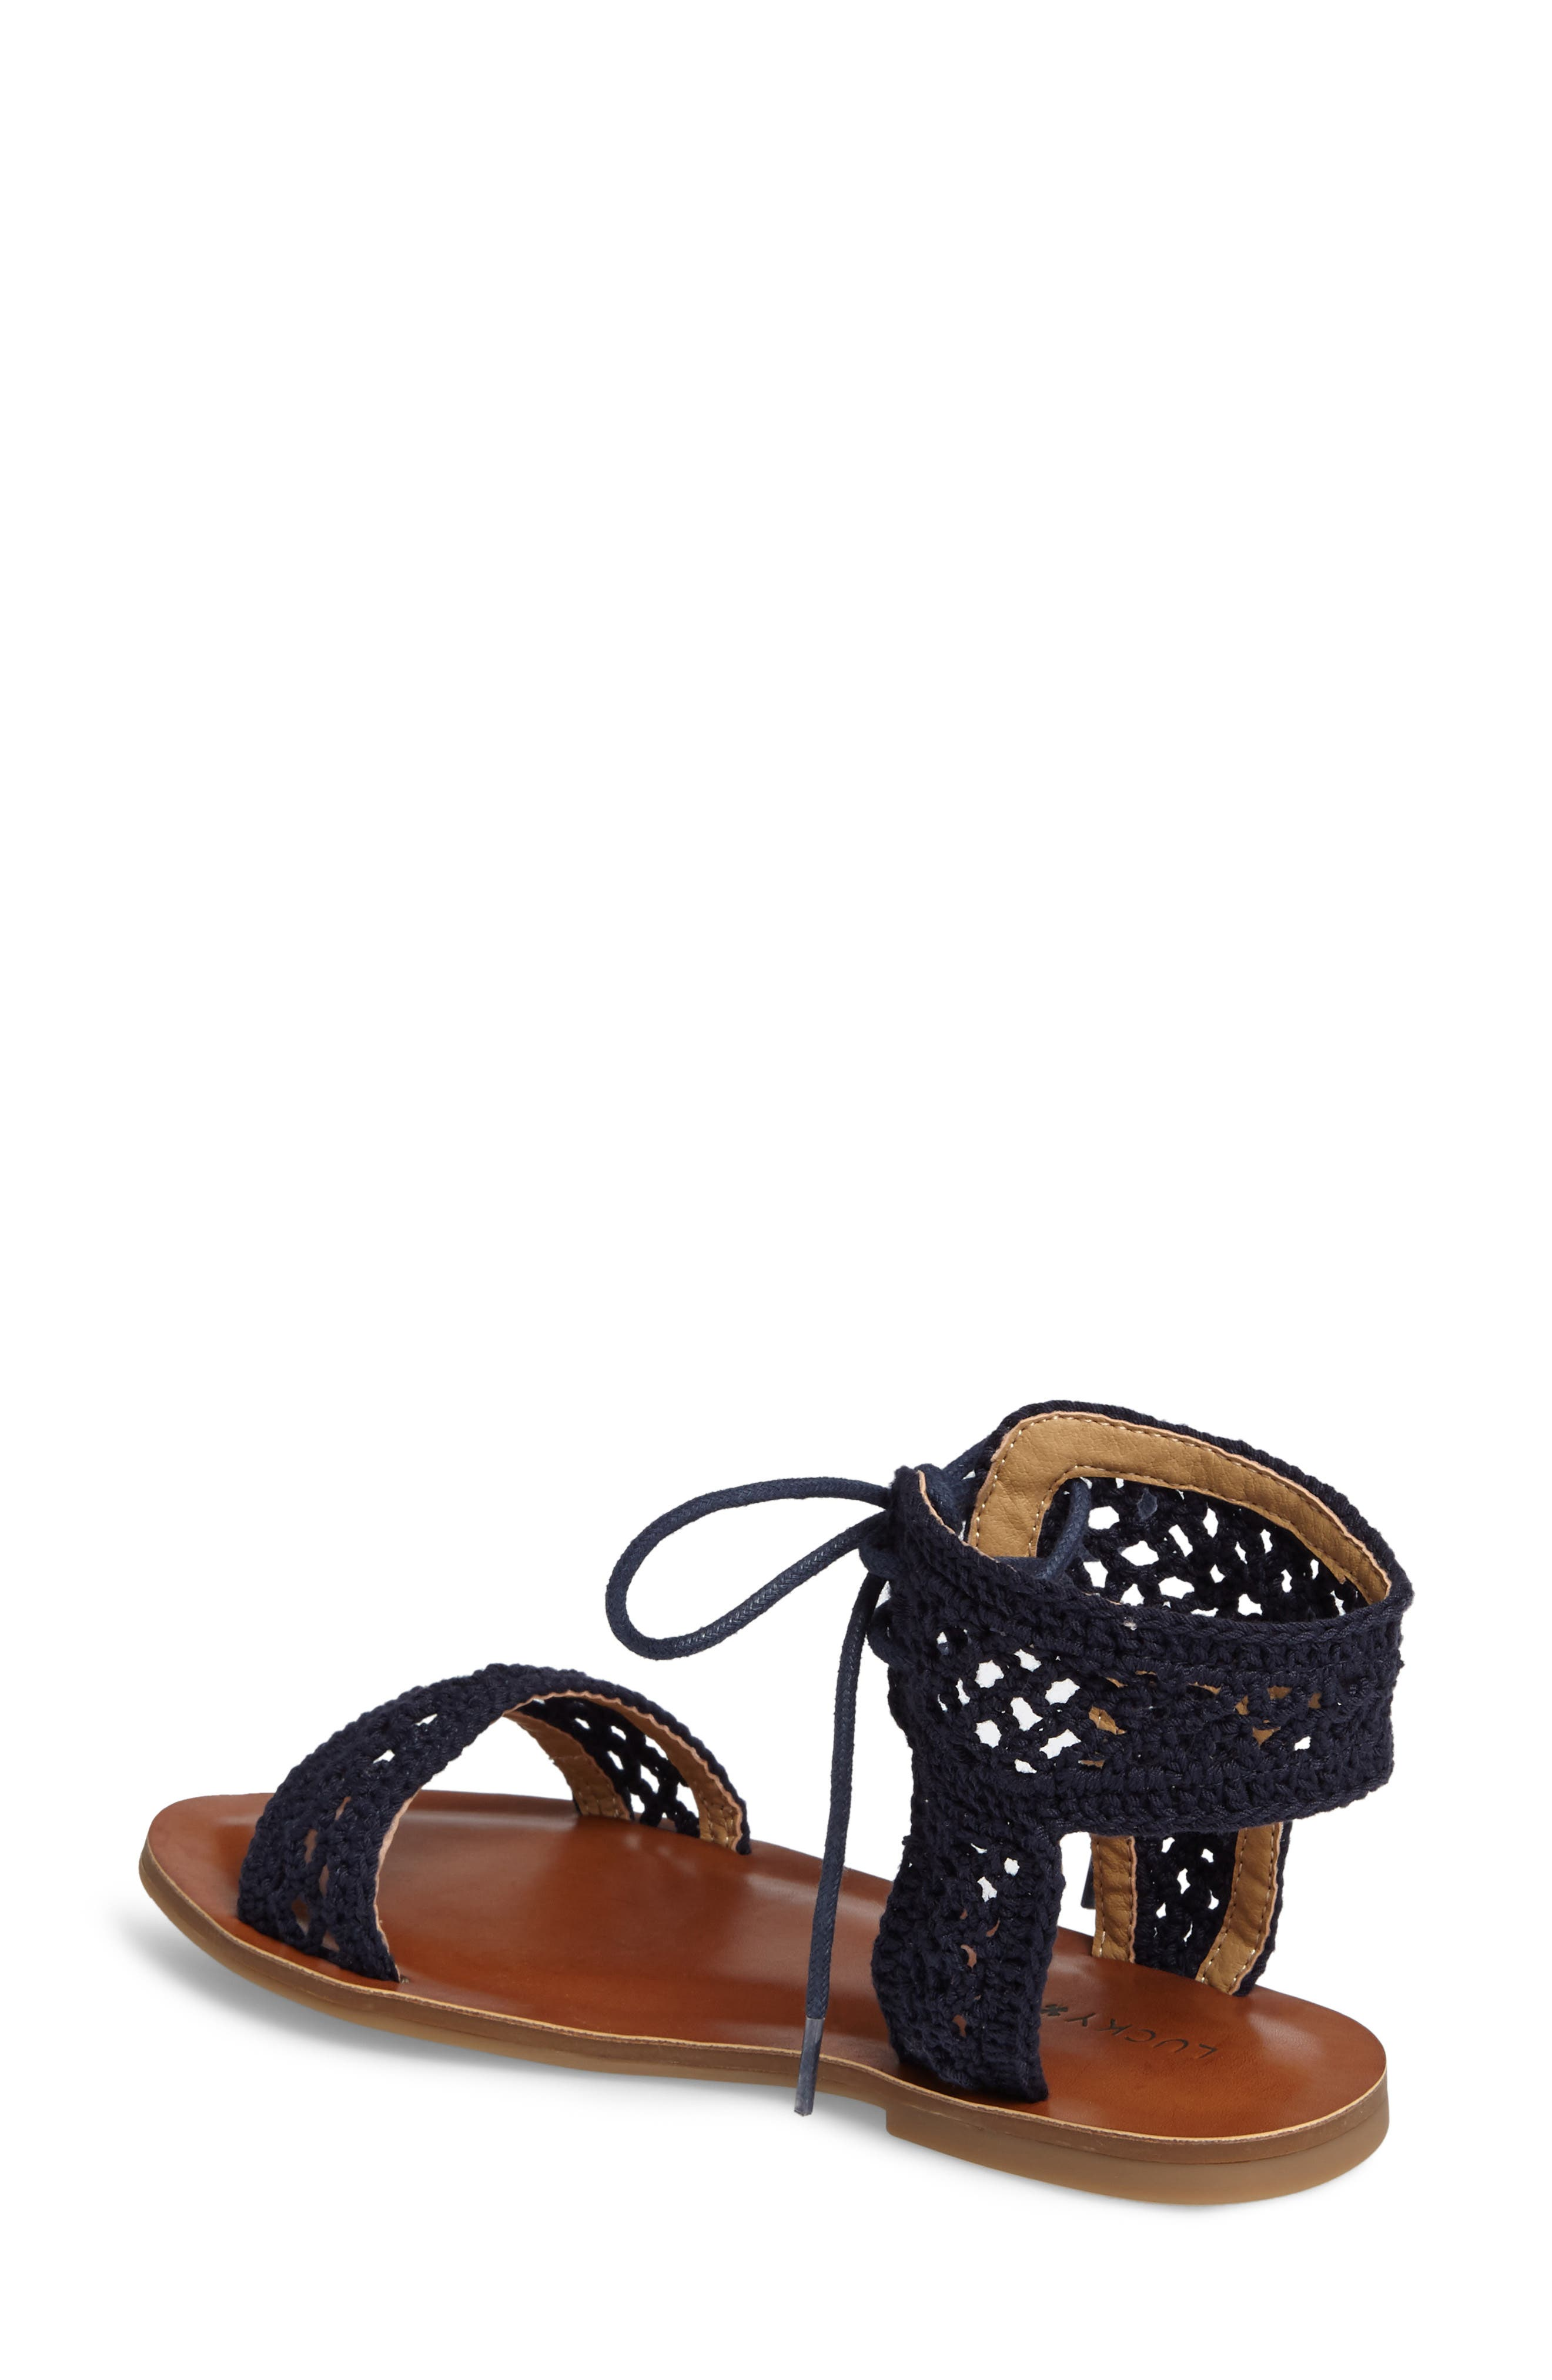 Ariah Ankle Tie Sandal,                             Alternate thumbnail 2, color,                             Moroccan Blue Fabric